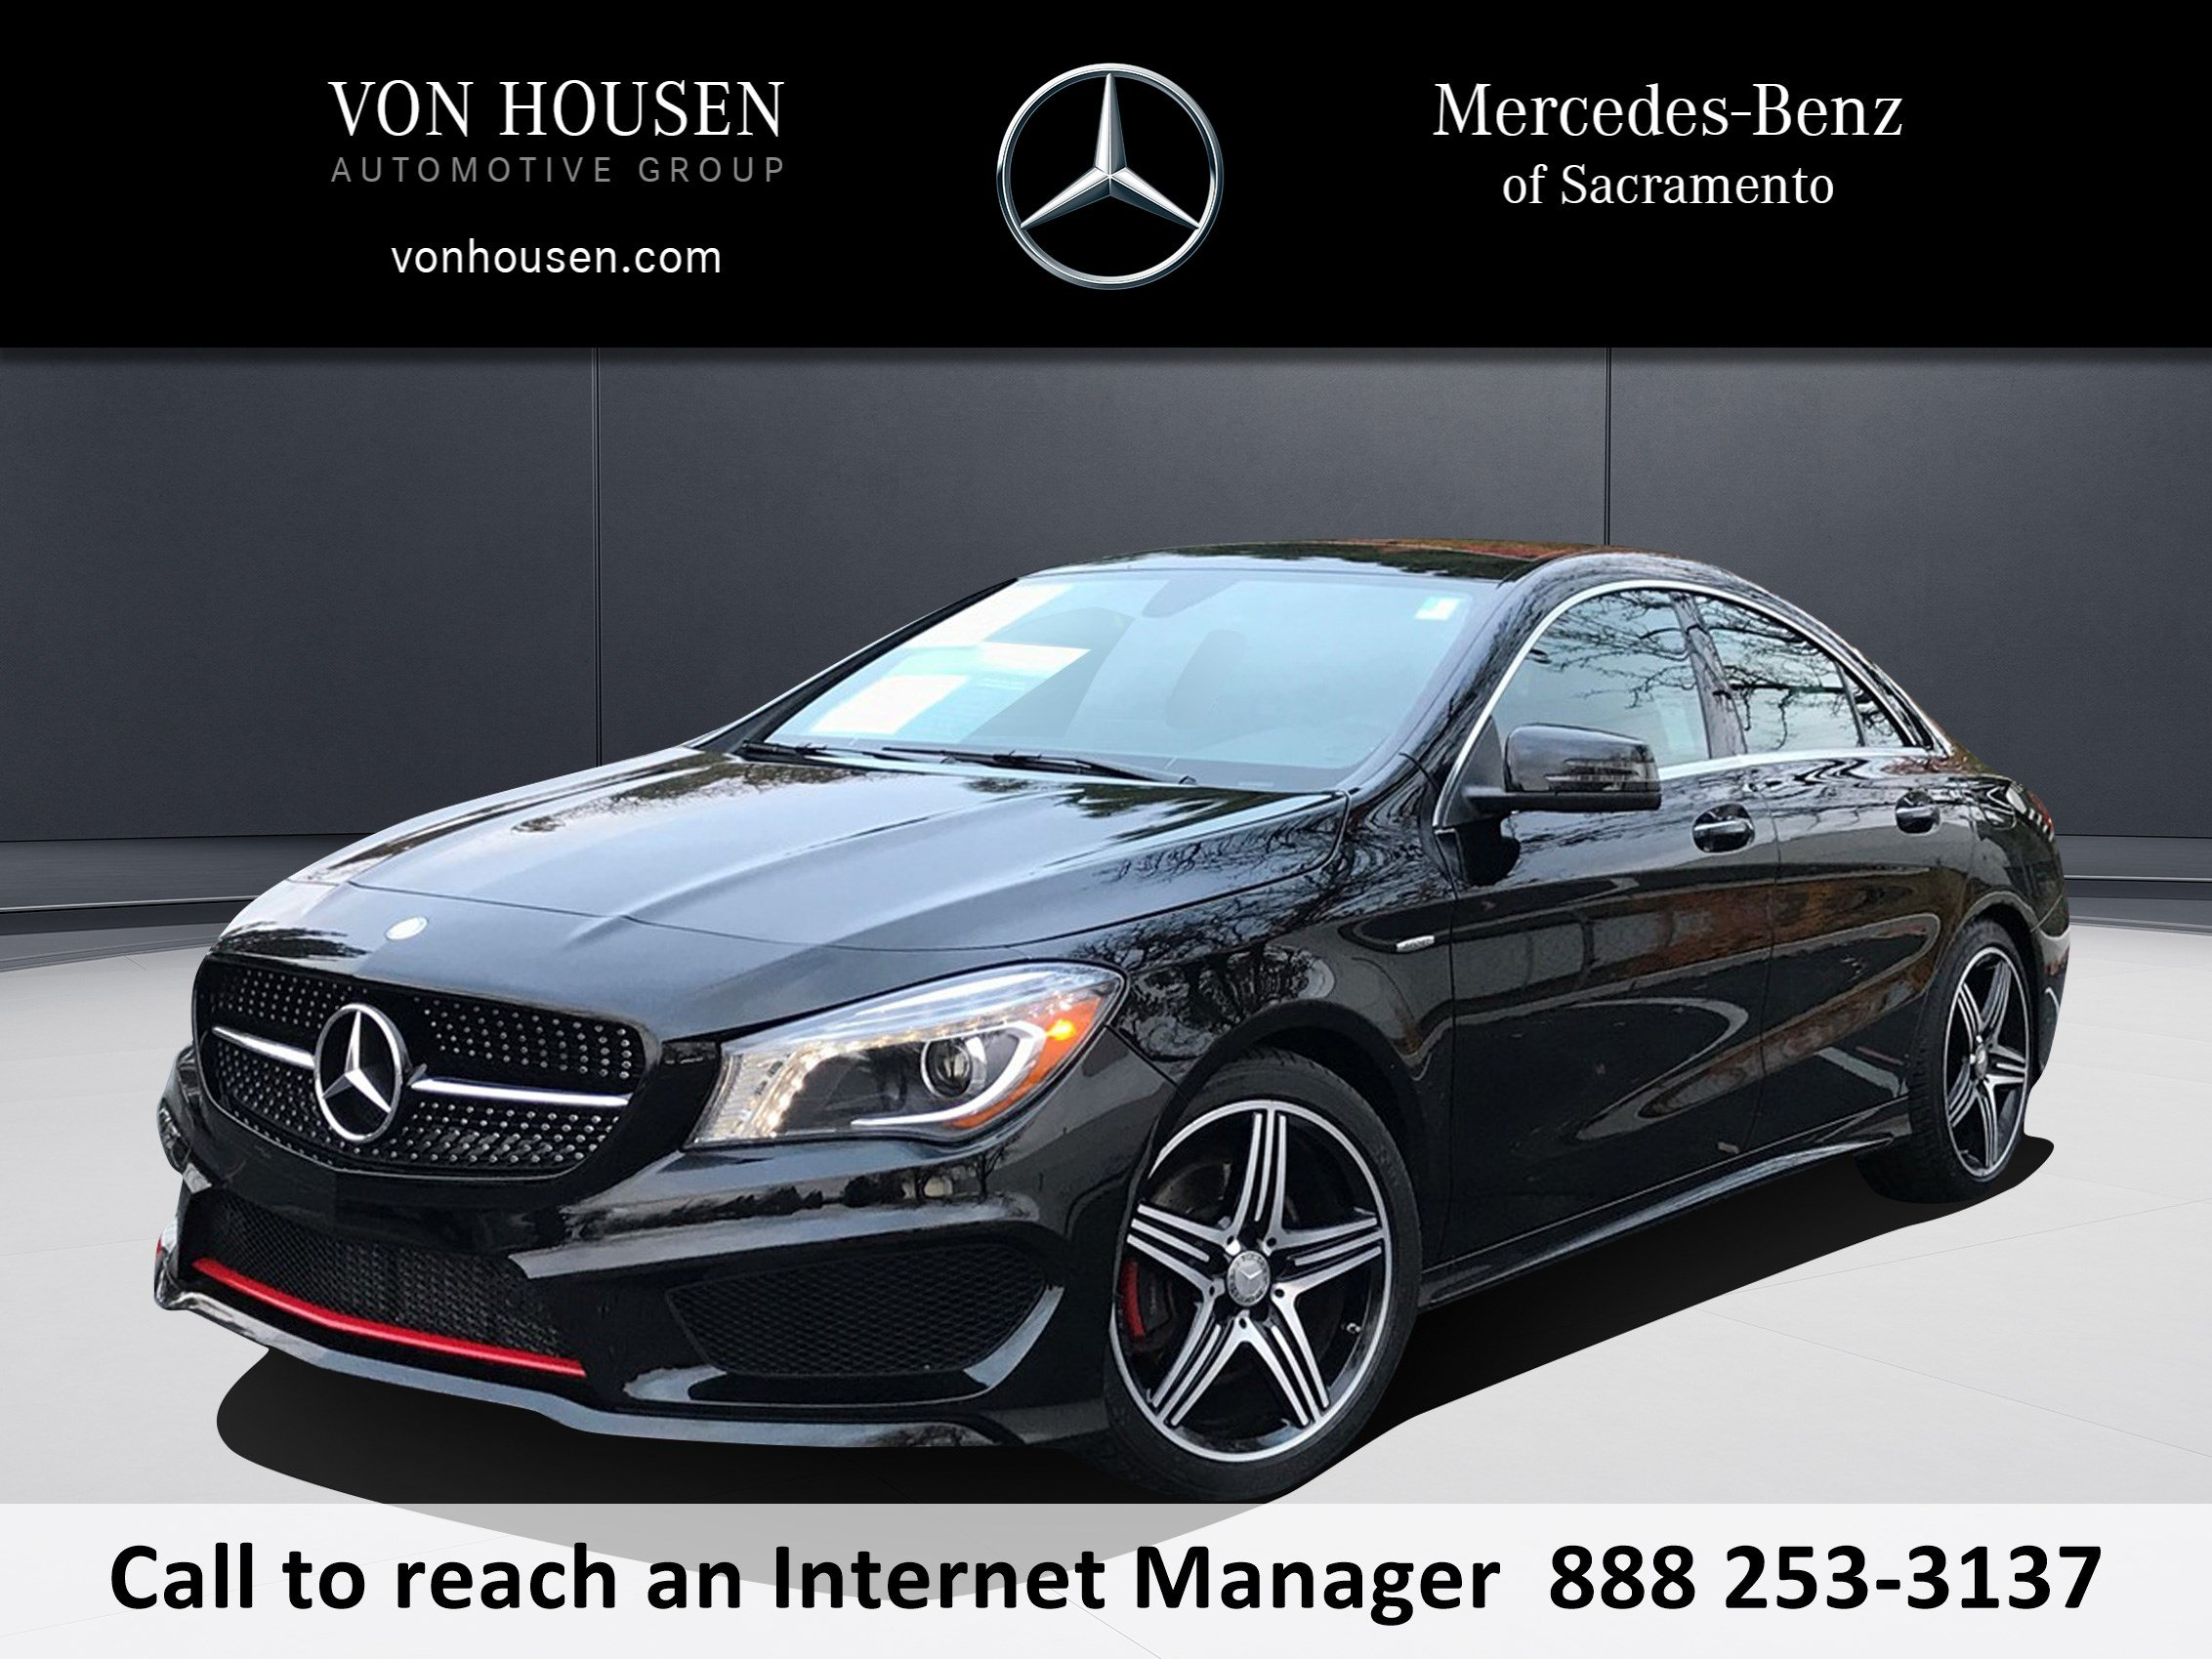 Certified Pre Owned 2016 Mercedes Benz CLA CLA 250 Coupe in